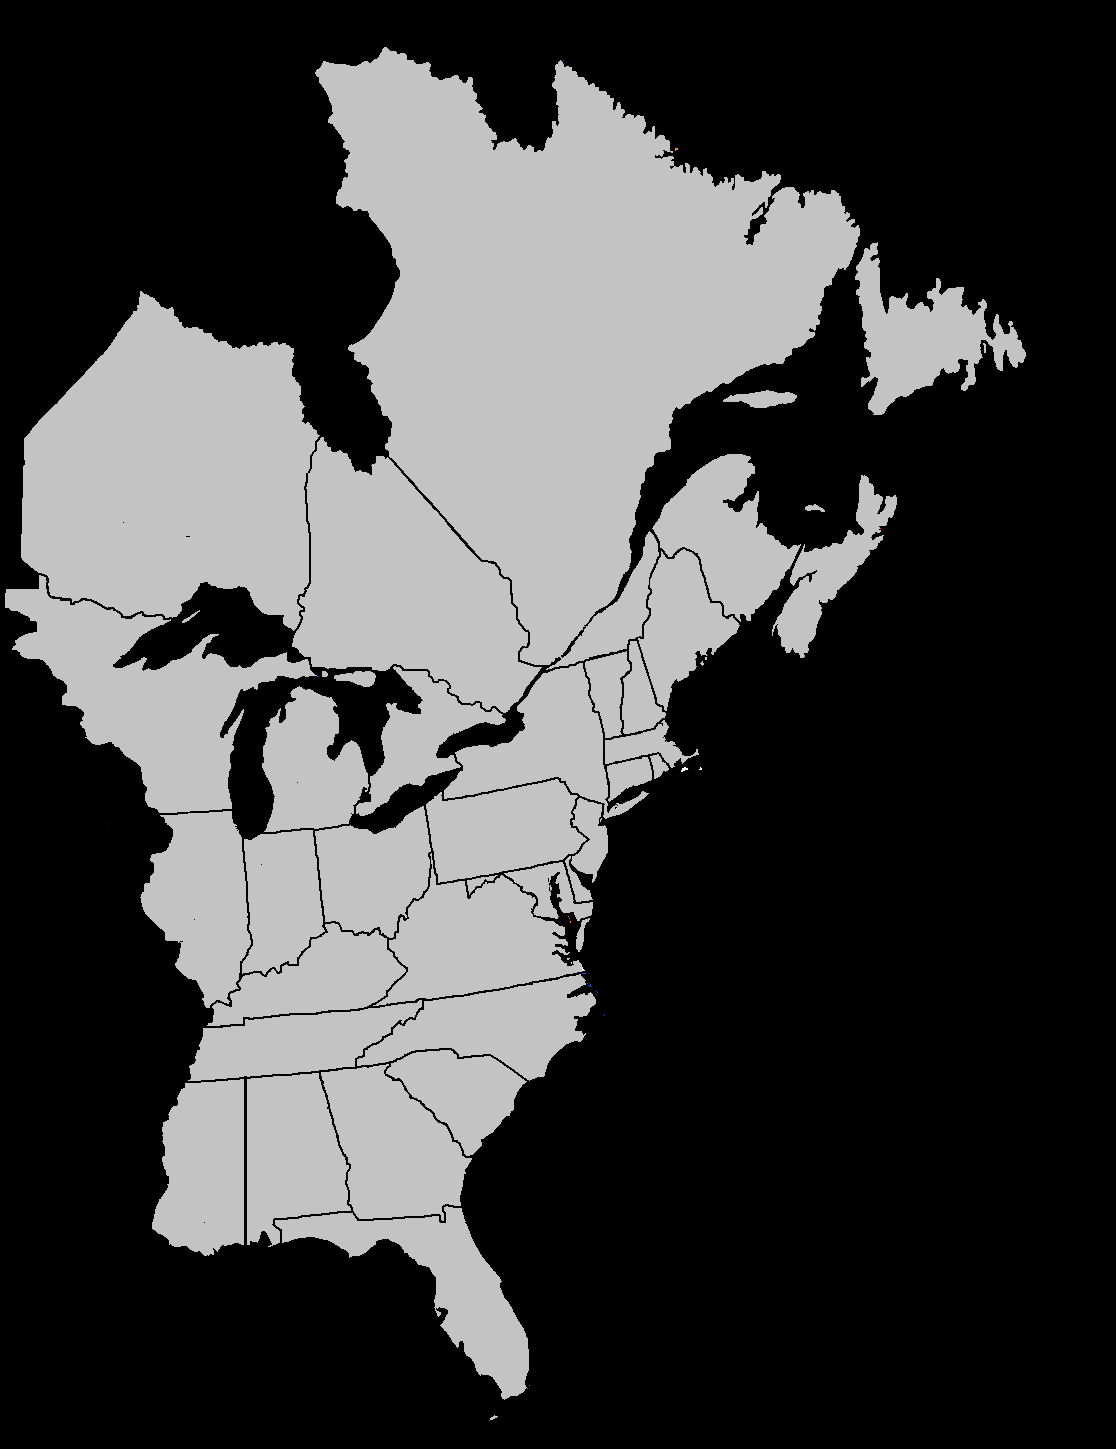 Dominion of America Blank Province Map.png